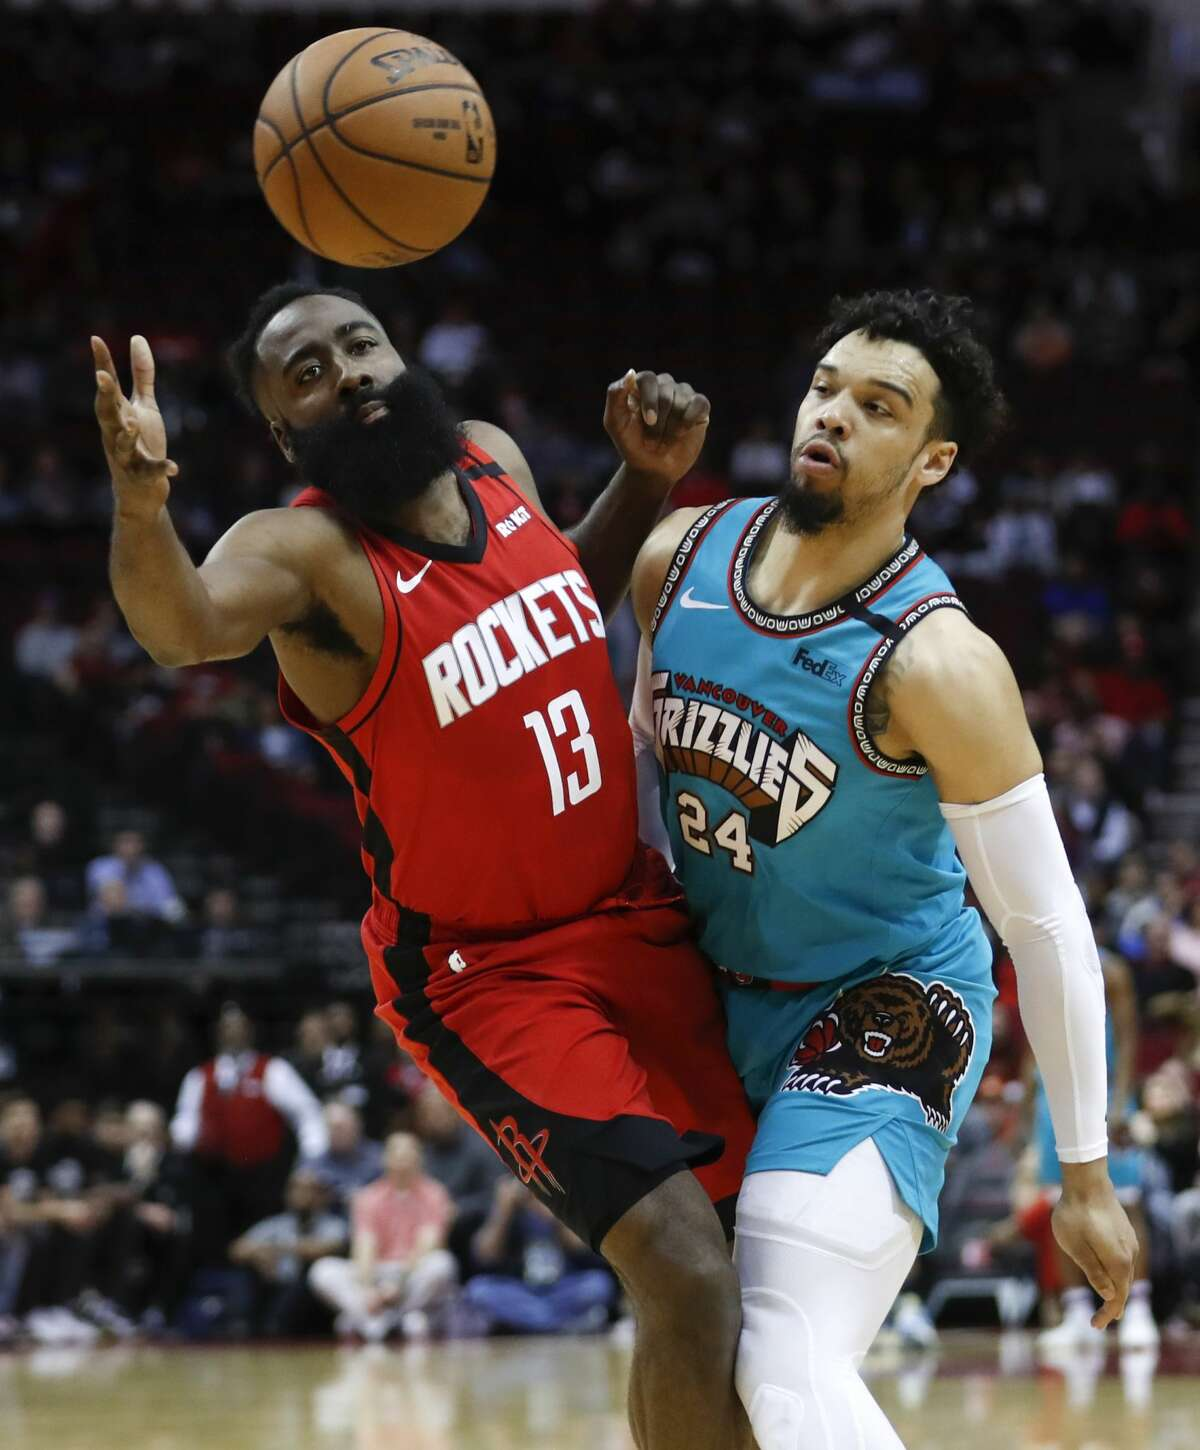 Houston Rockets guard James Harden (13) takes an inbounds pass defended by Memphis Grizzlies guard Dillon Brooks (24) during the first half of an NBA basketball game on Wednesday, Feb. 26, 2020, at Toyota Center in Houston.